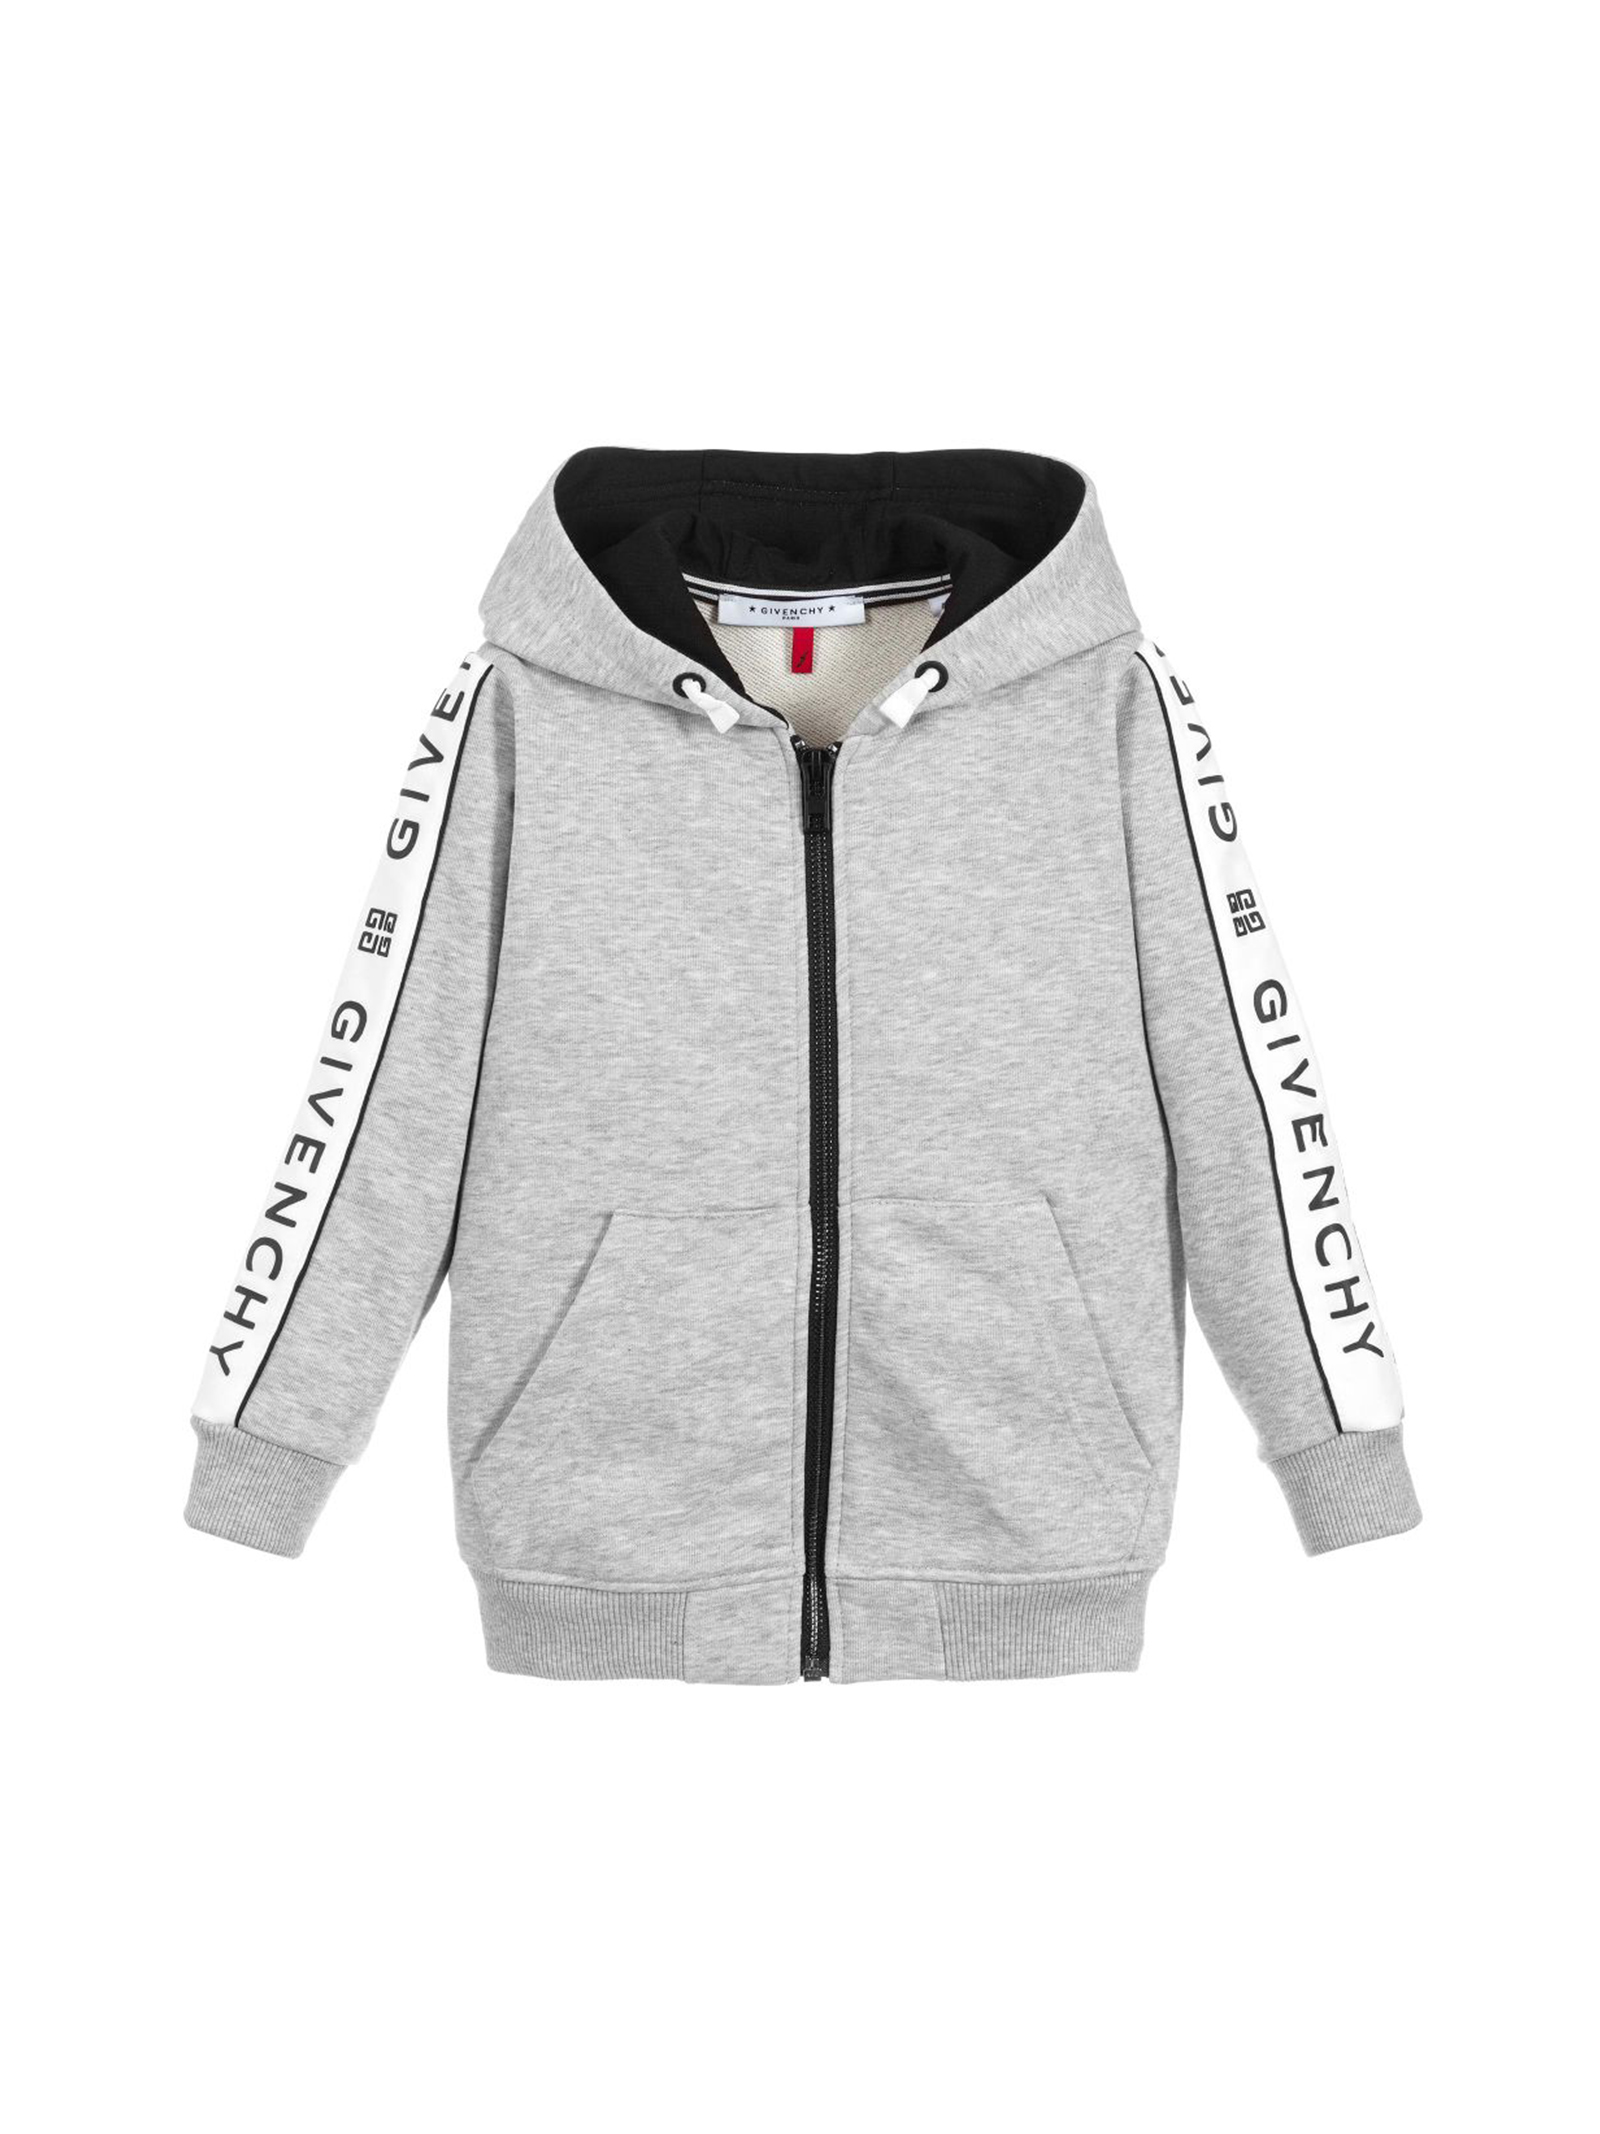 3b0ad84a200e GREY SWEATER GIVENCHY KIDS FOR BOY - Givenchy Kids - Mancini Junior